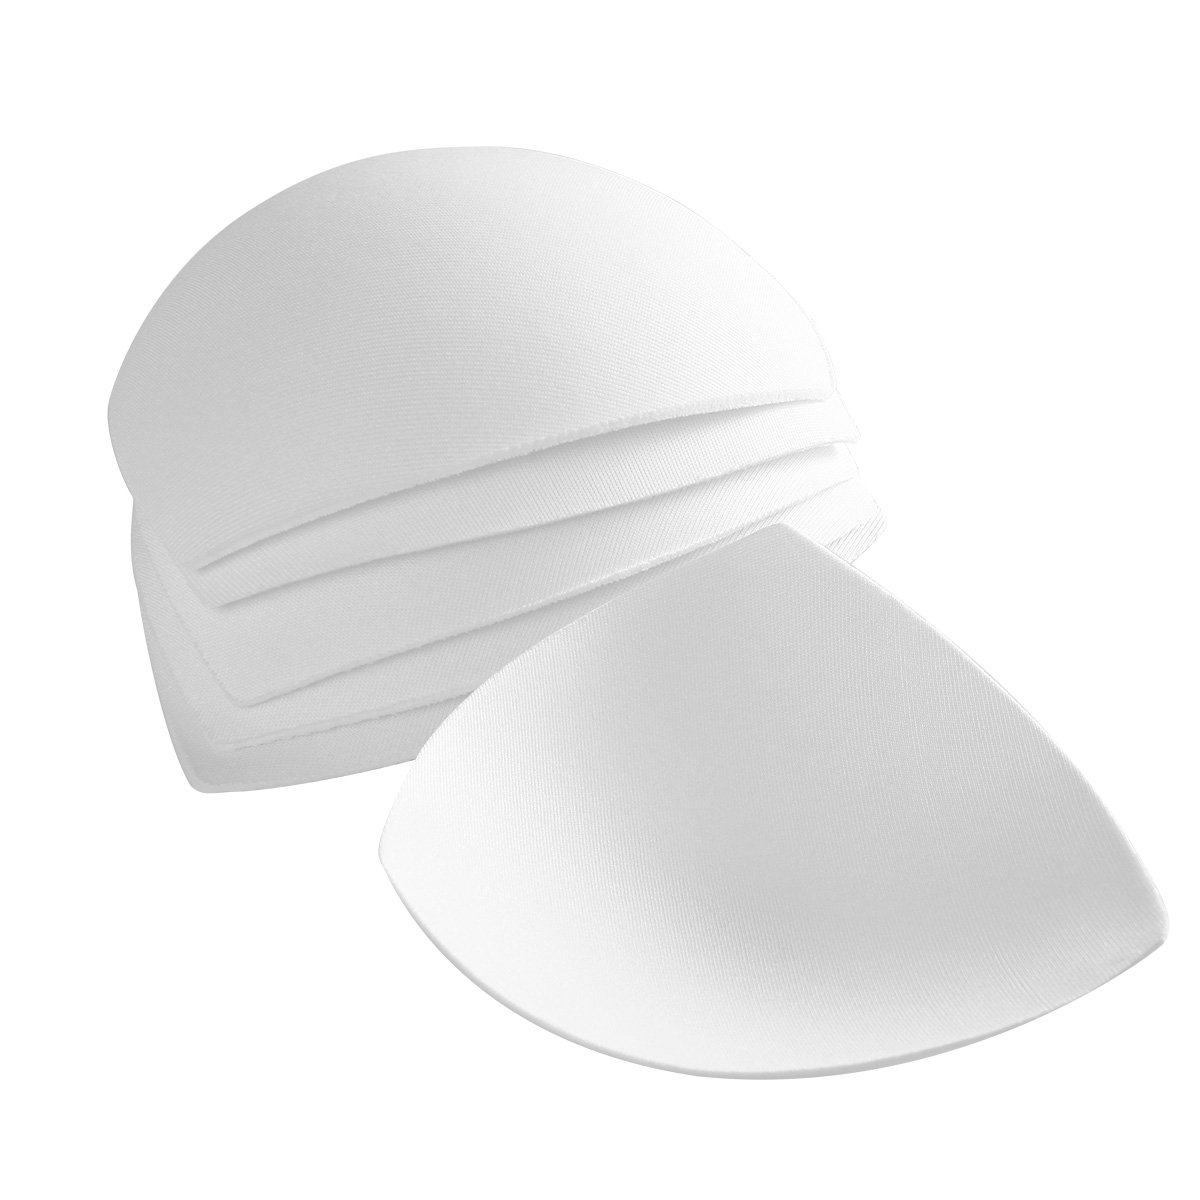 Tinksky Womens Removable Smart Cups Bra Inserts Pads For Swimwear Sports 3 Pair (White) I21558123KIXA5132